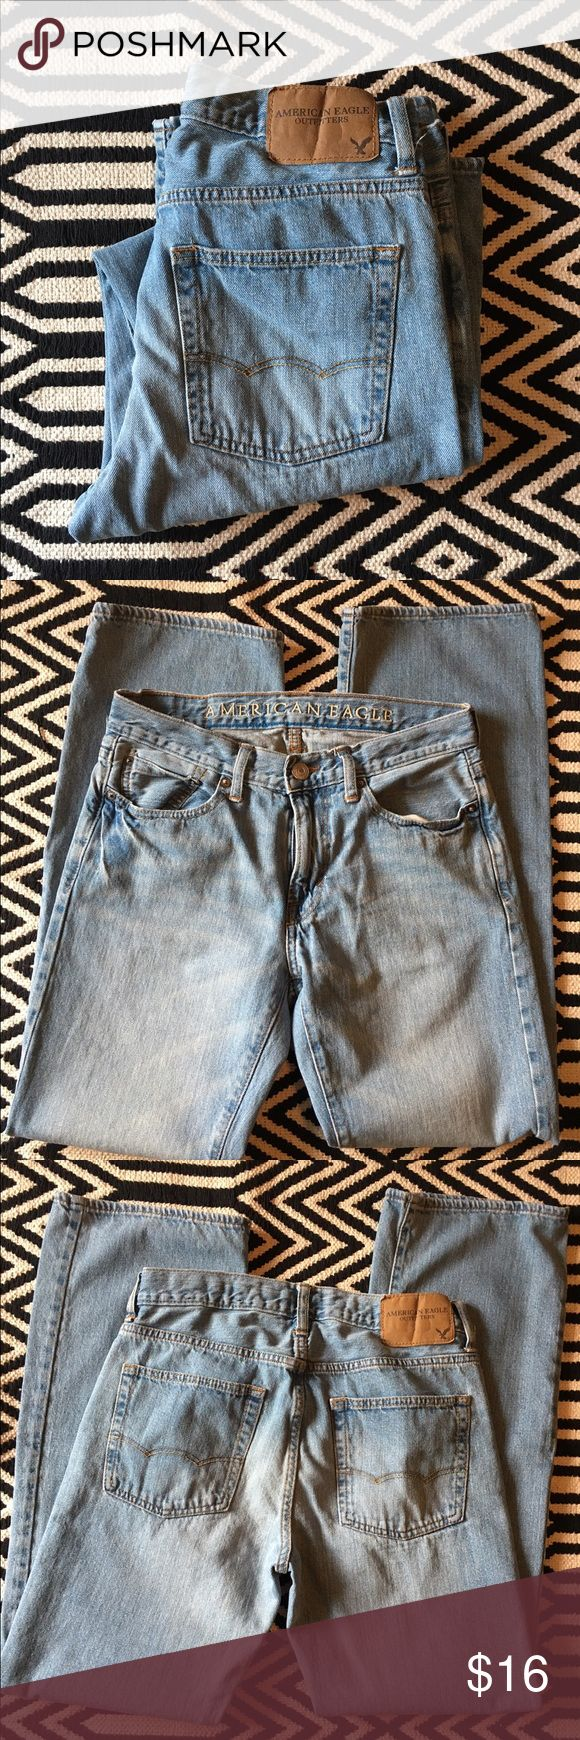 American Eagle Outfitters jeans, original boot. Excellent condition. American Eagle Outfitters jeans. Size 29/32. 100% cotton. Original boot. American Eagle Outfitters Jeans Bootcut